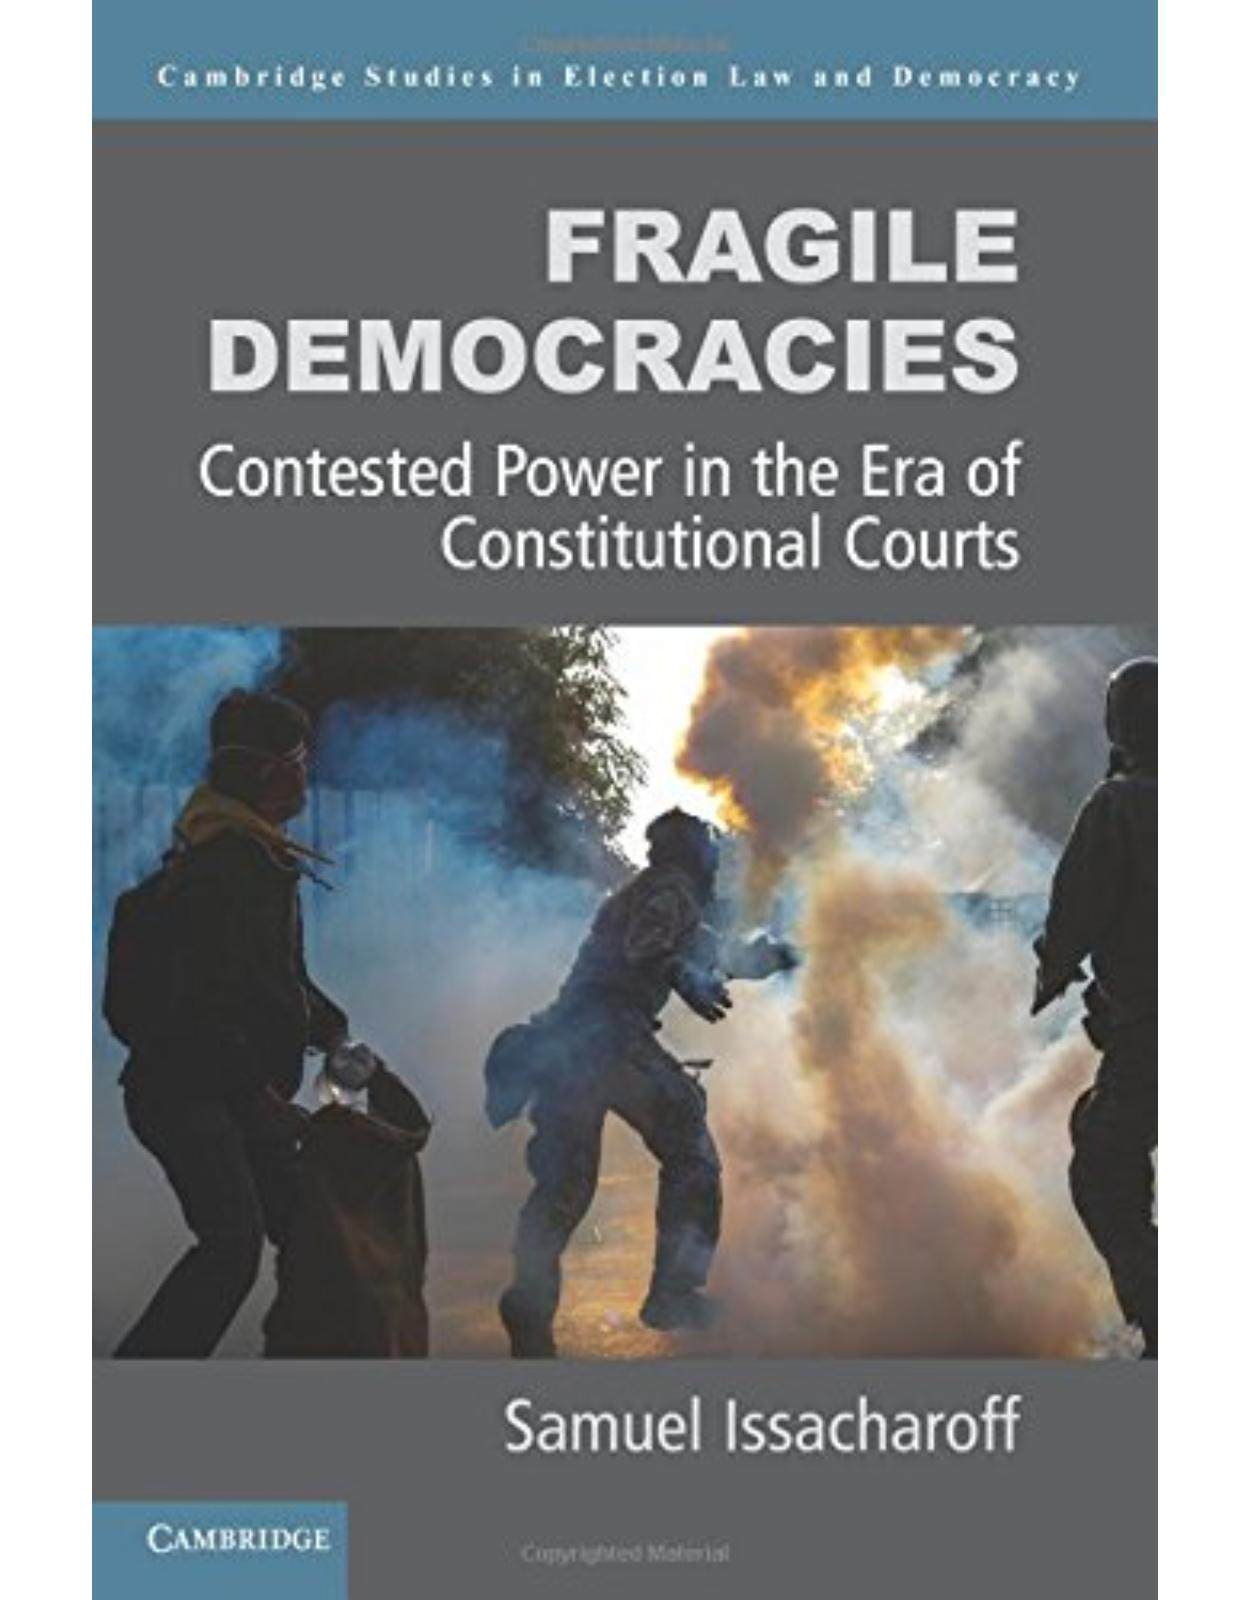 Fragile Democracies: Contested Power in the Era of Constitutional Courts (Cambridge Studies in Election Law and Democracy)